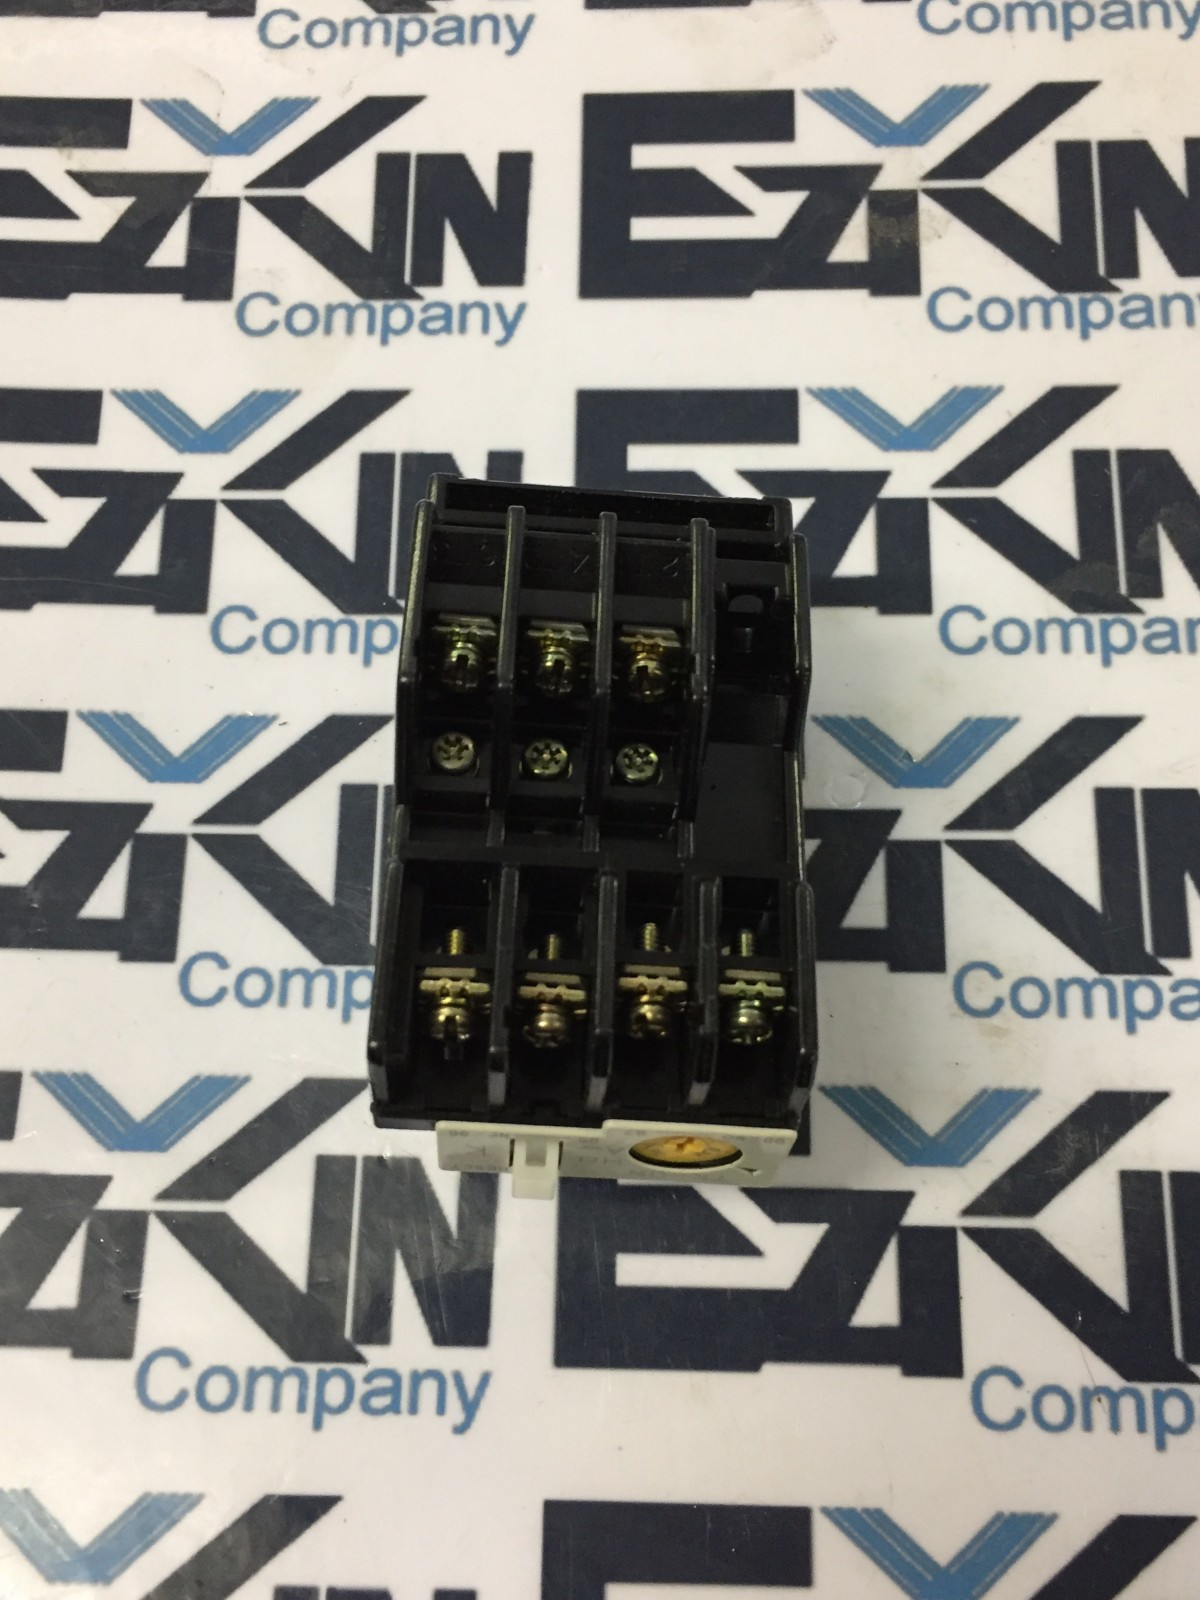 Fuji Electronic TK-ON 4NK0AB overload relay 0.15-0.24A